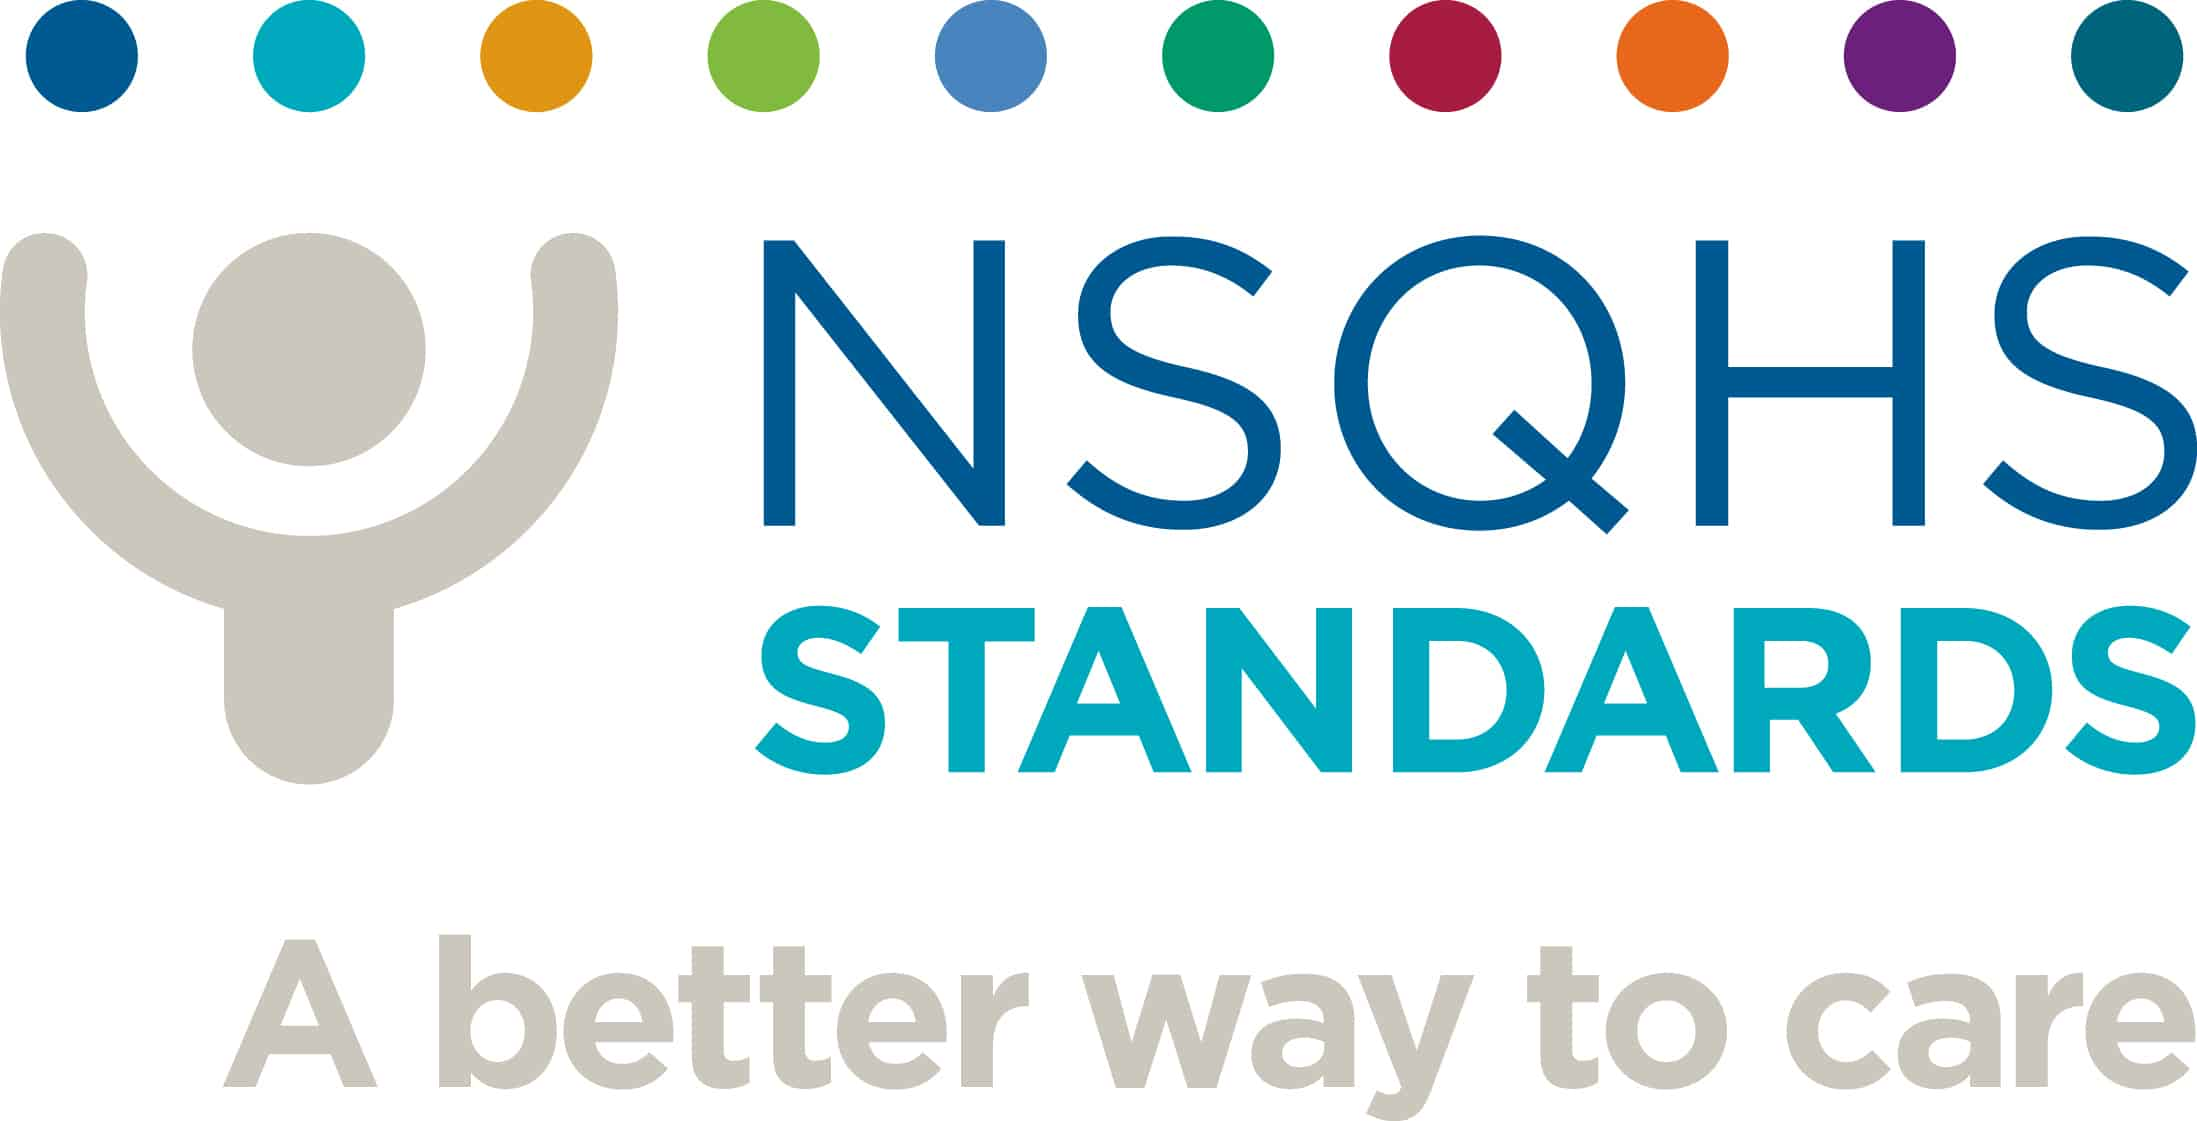 standards of quality health care Hso has officially been accredited by the standards council of canada to develop national standards of canada in health and social services hso is the only standards development organization in canada solely dedicated to developing health and social service standards.